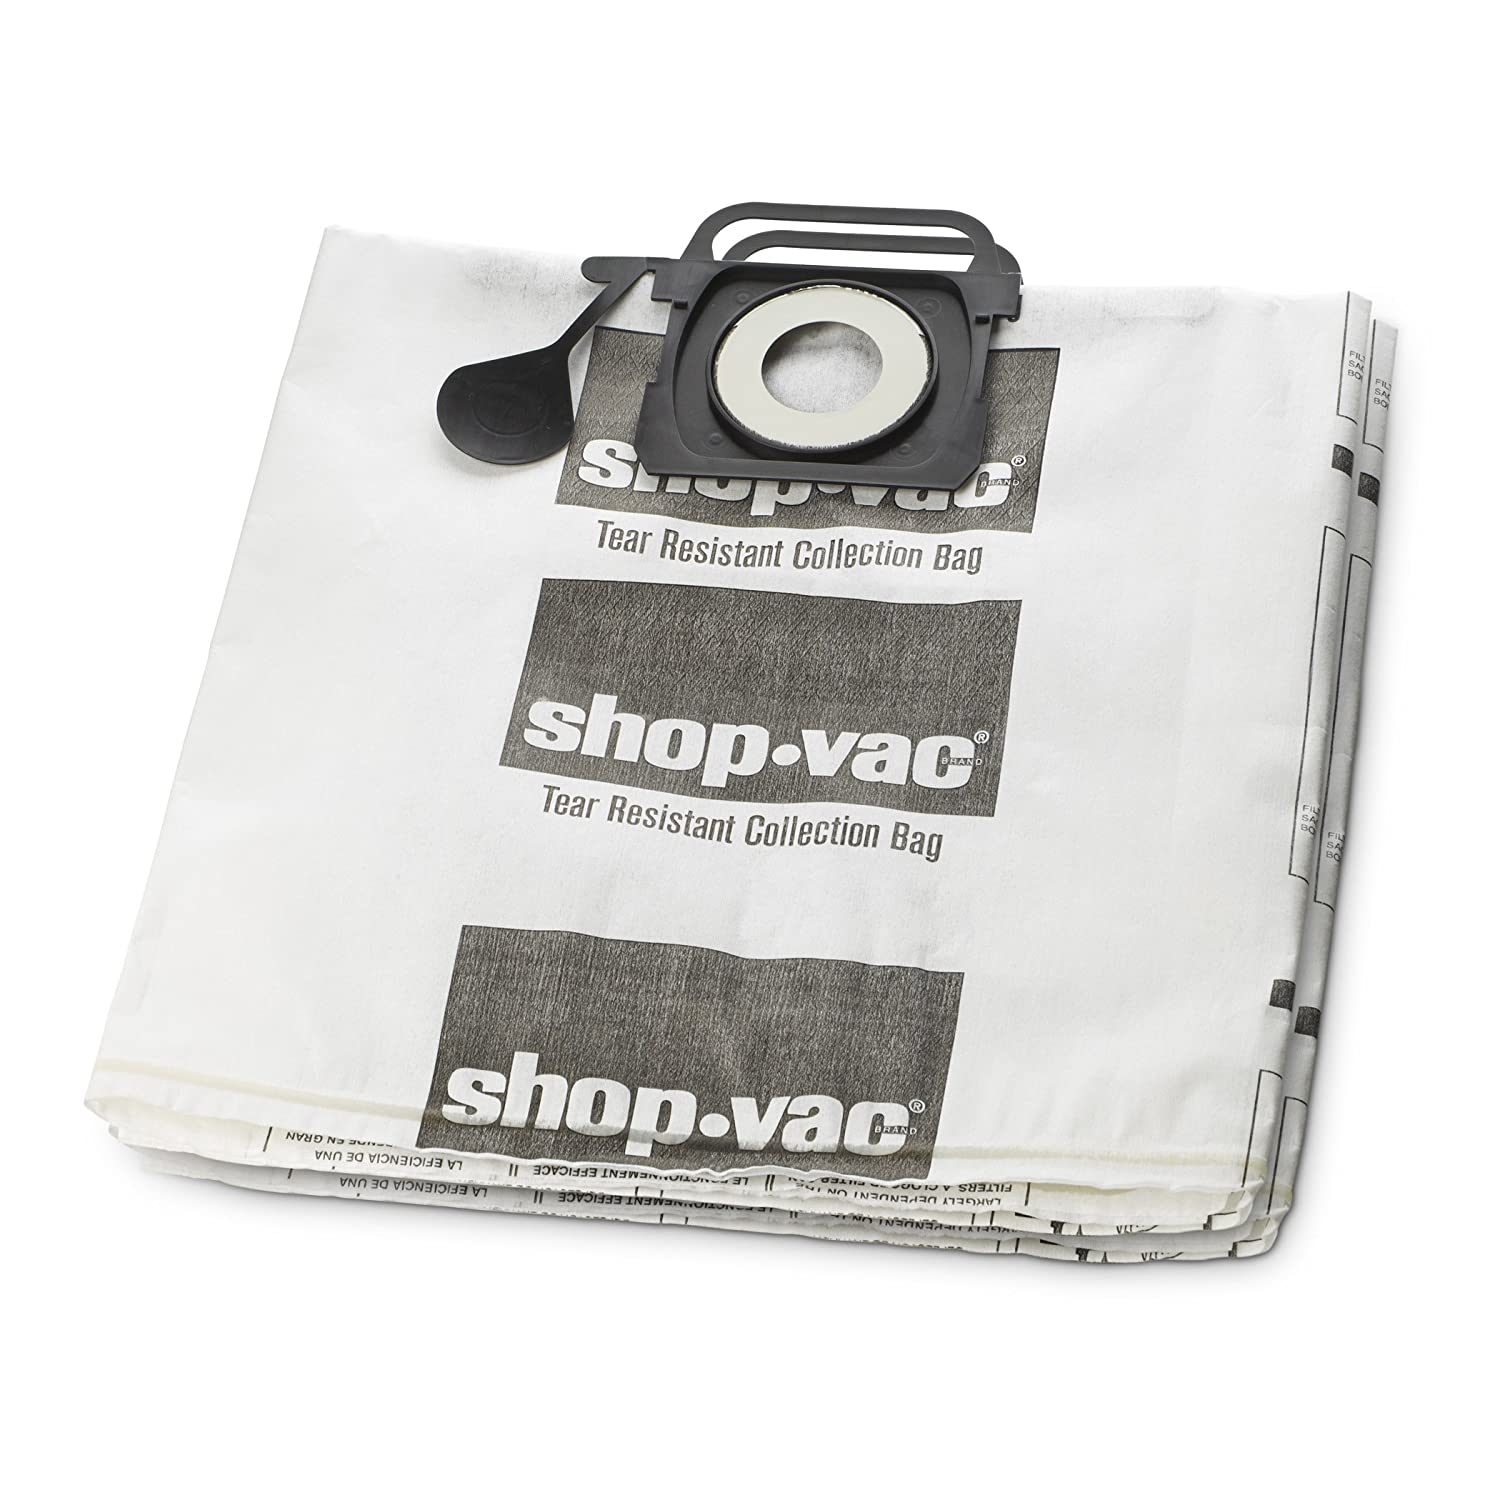 Shop-Vac 9021333 Tear Resistant Collection Filter Bags, 5-10 gallon, White